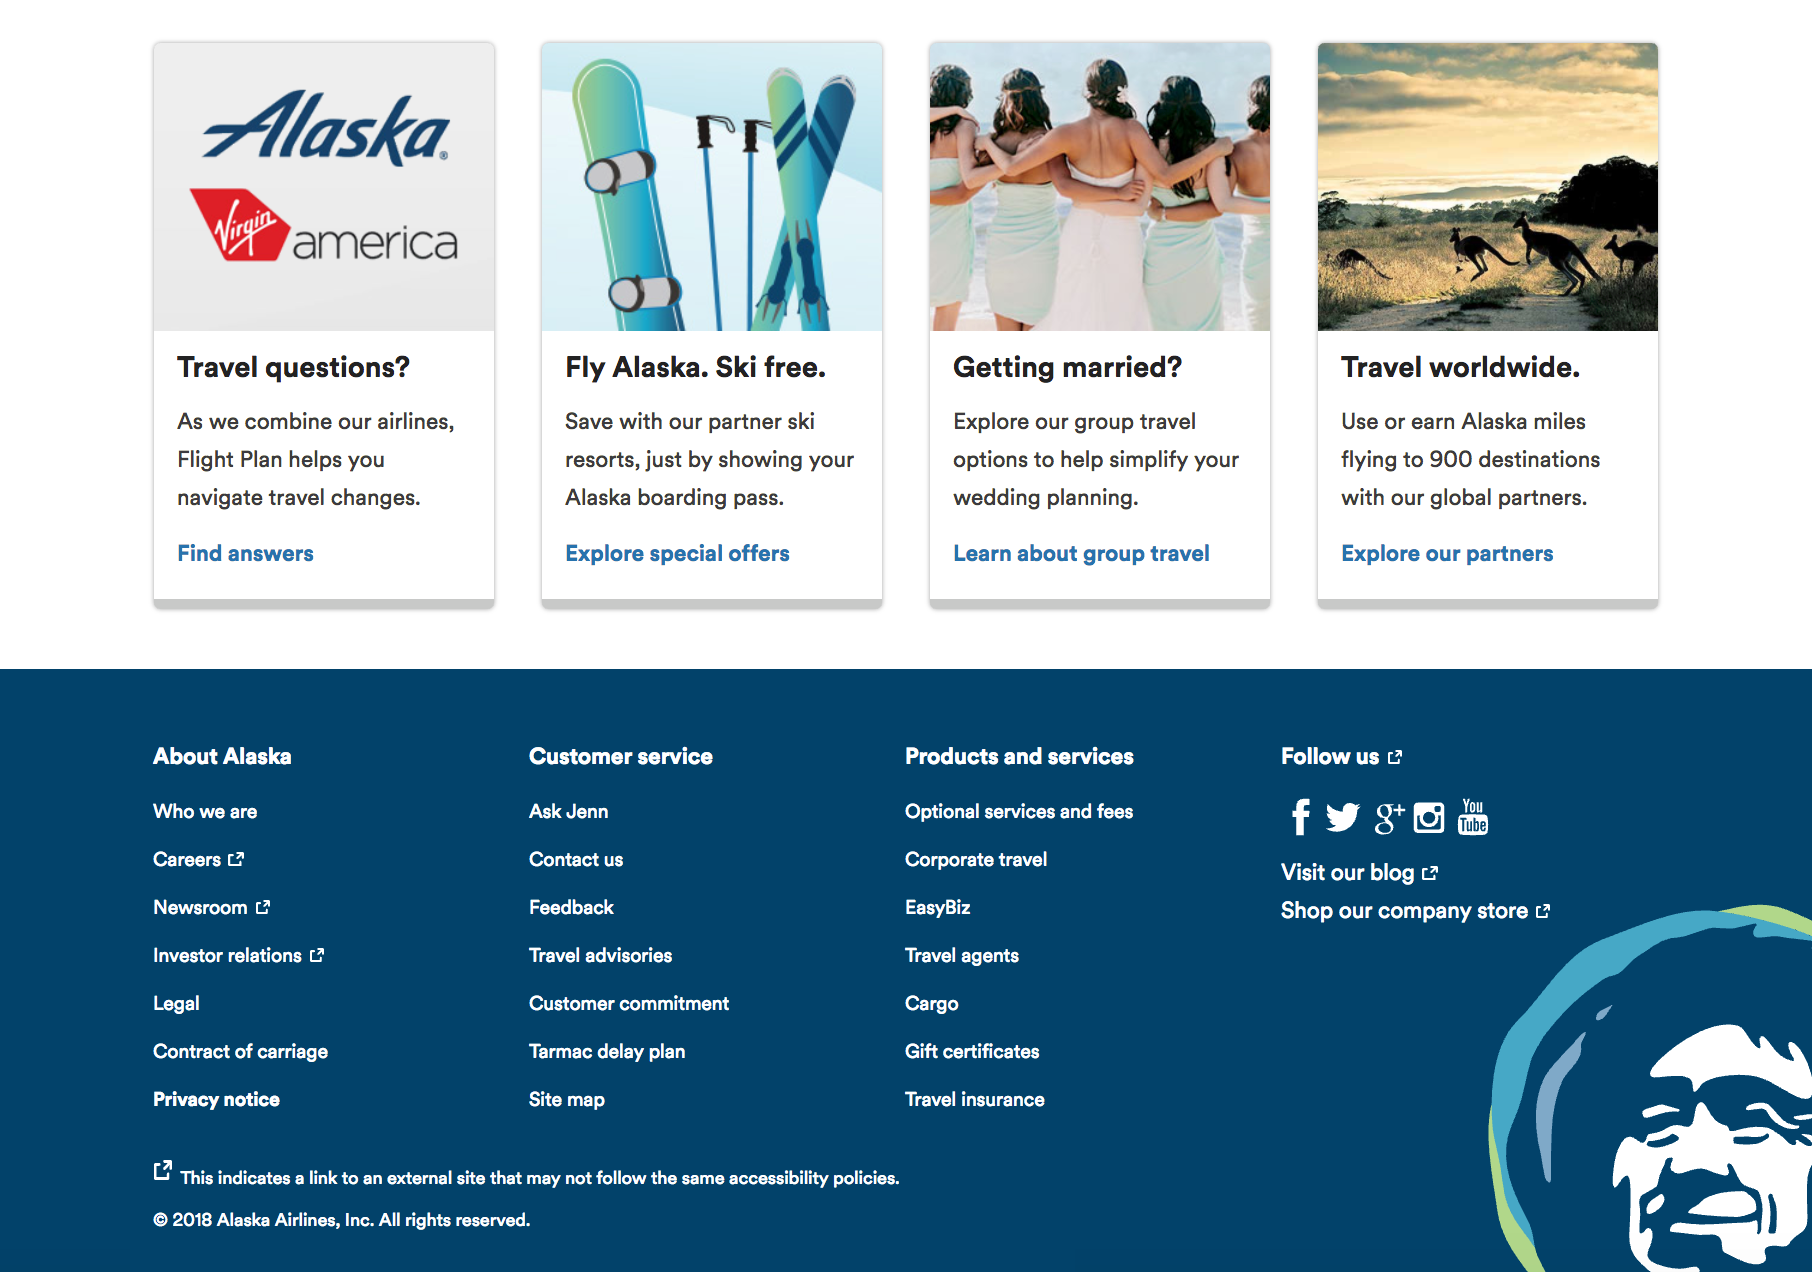 alaska airlines website footer color psychology and the neuroscience of UX